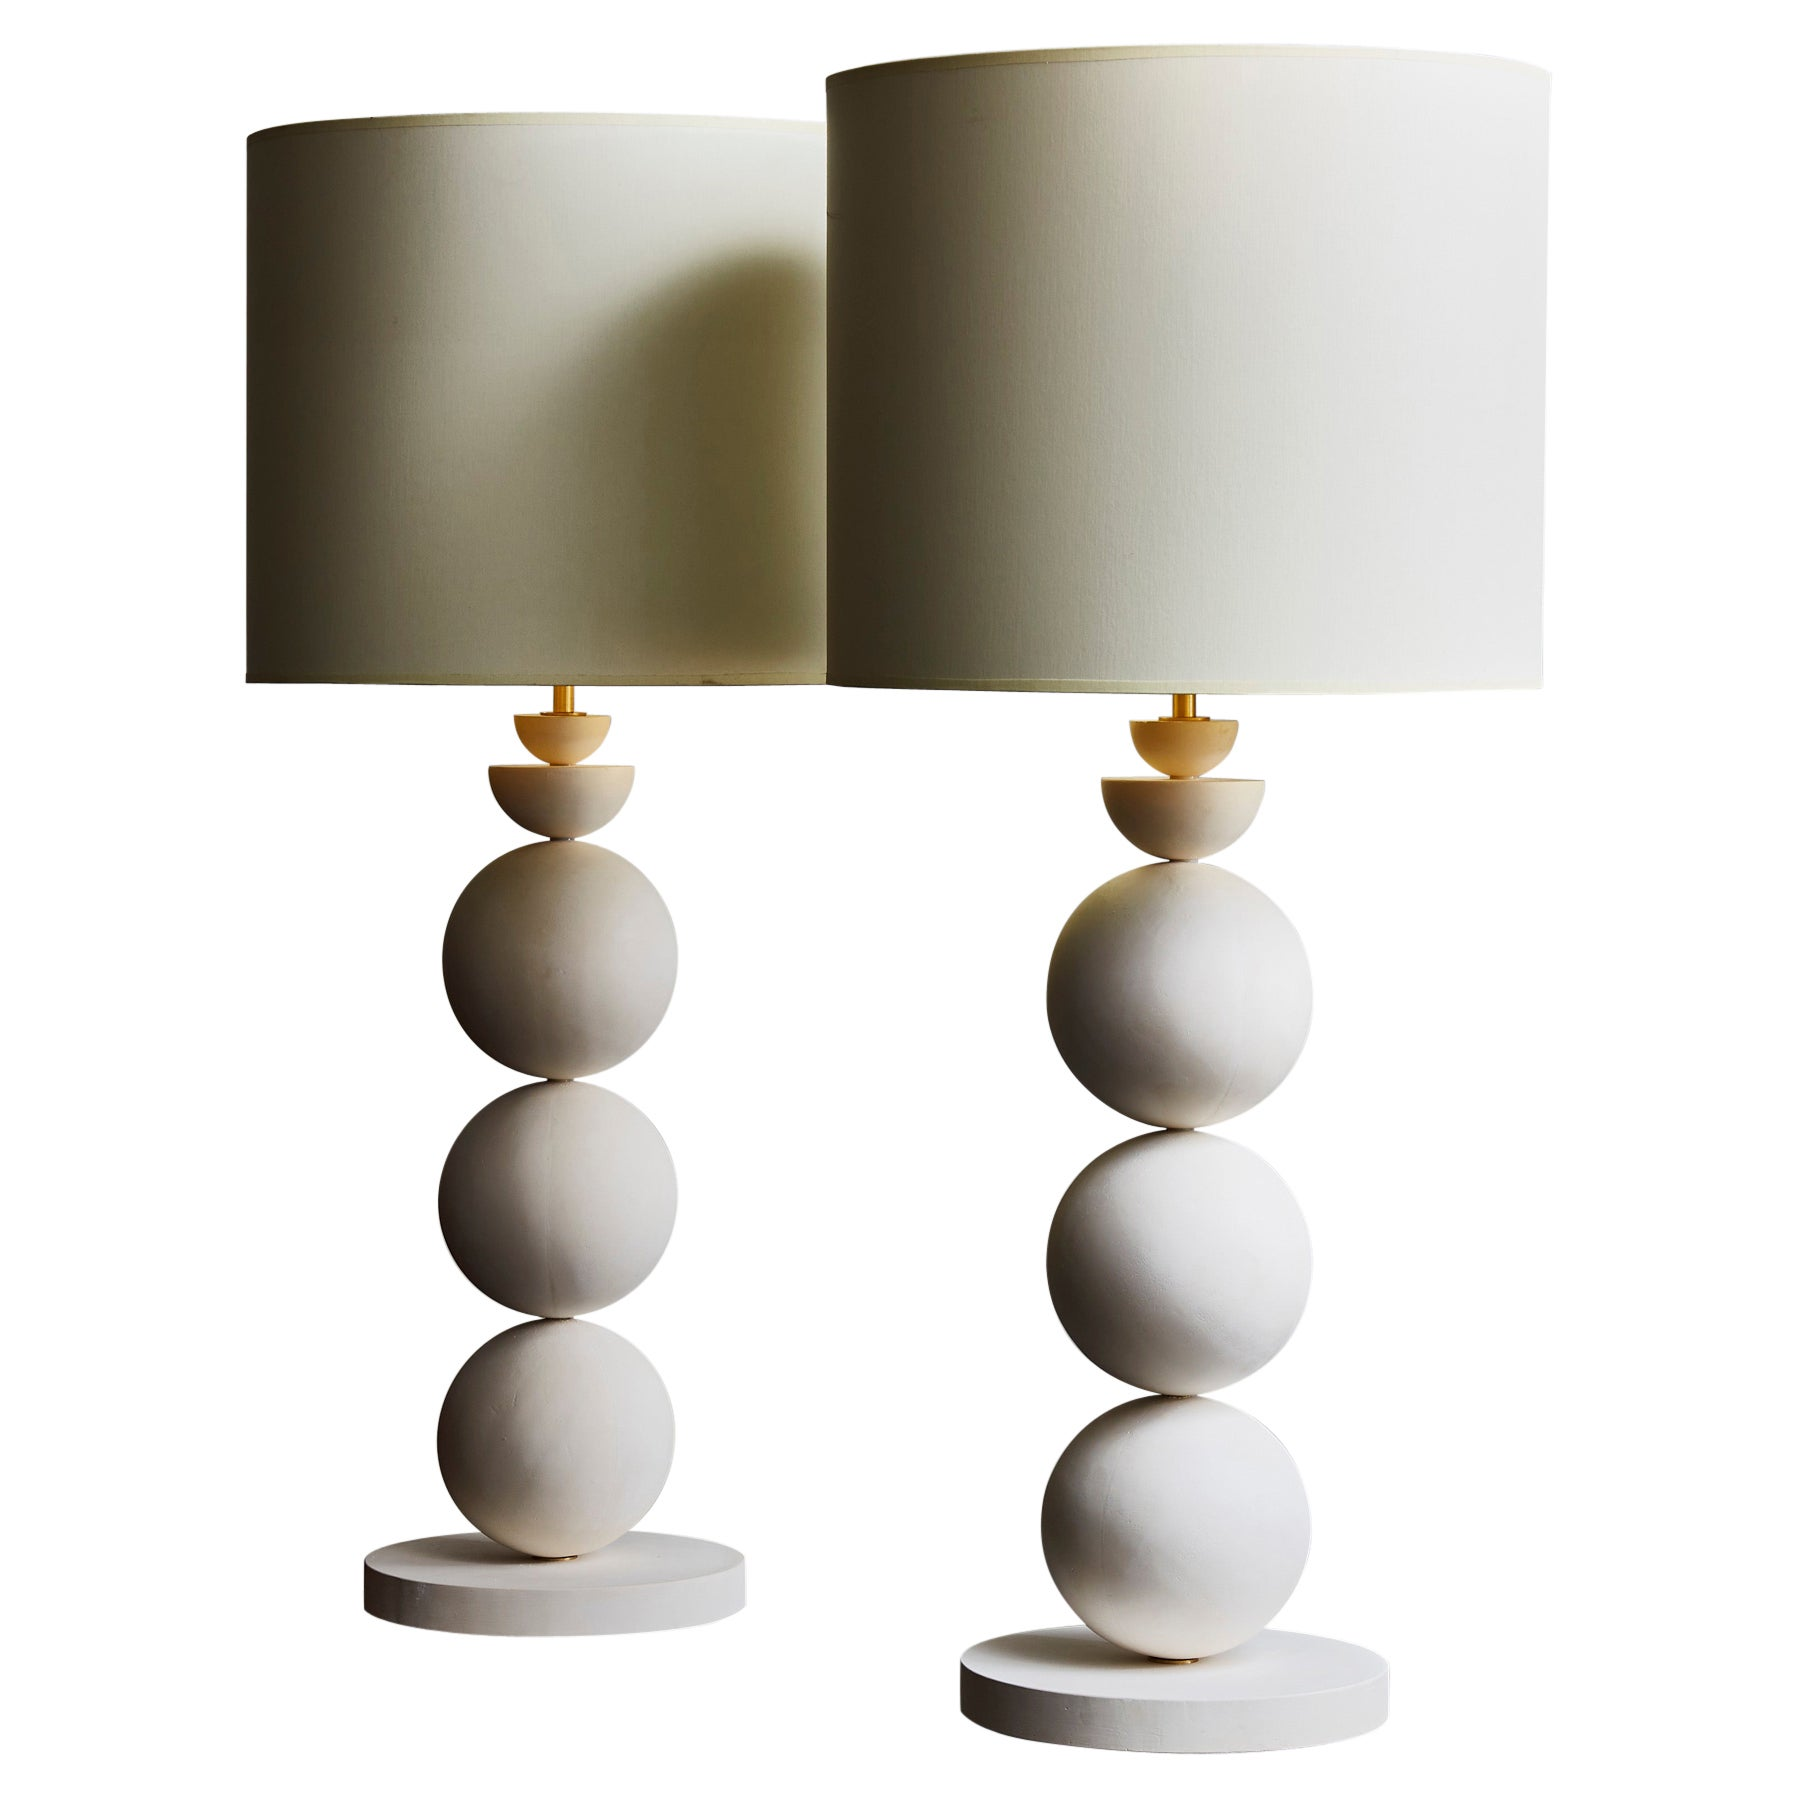 Pair of Geometrical Plaster Table Lamps